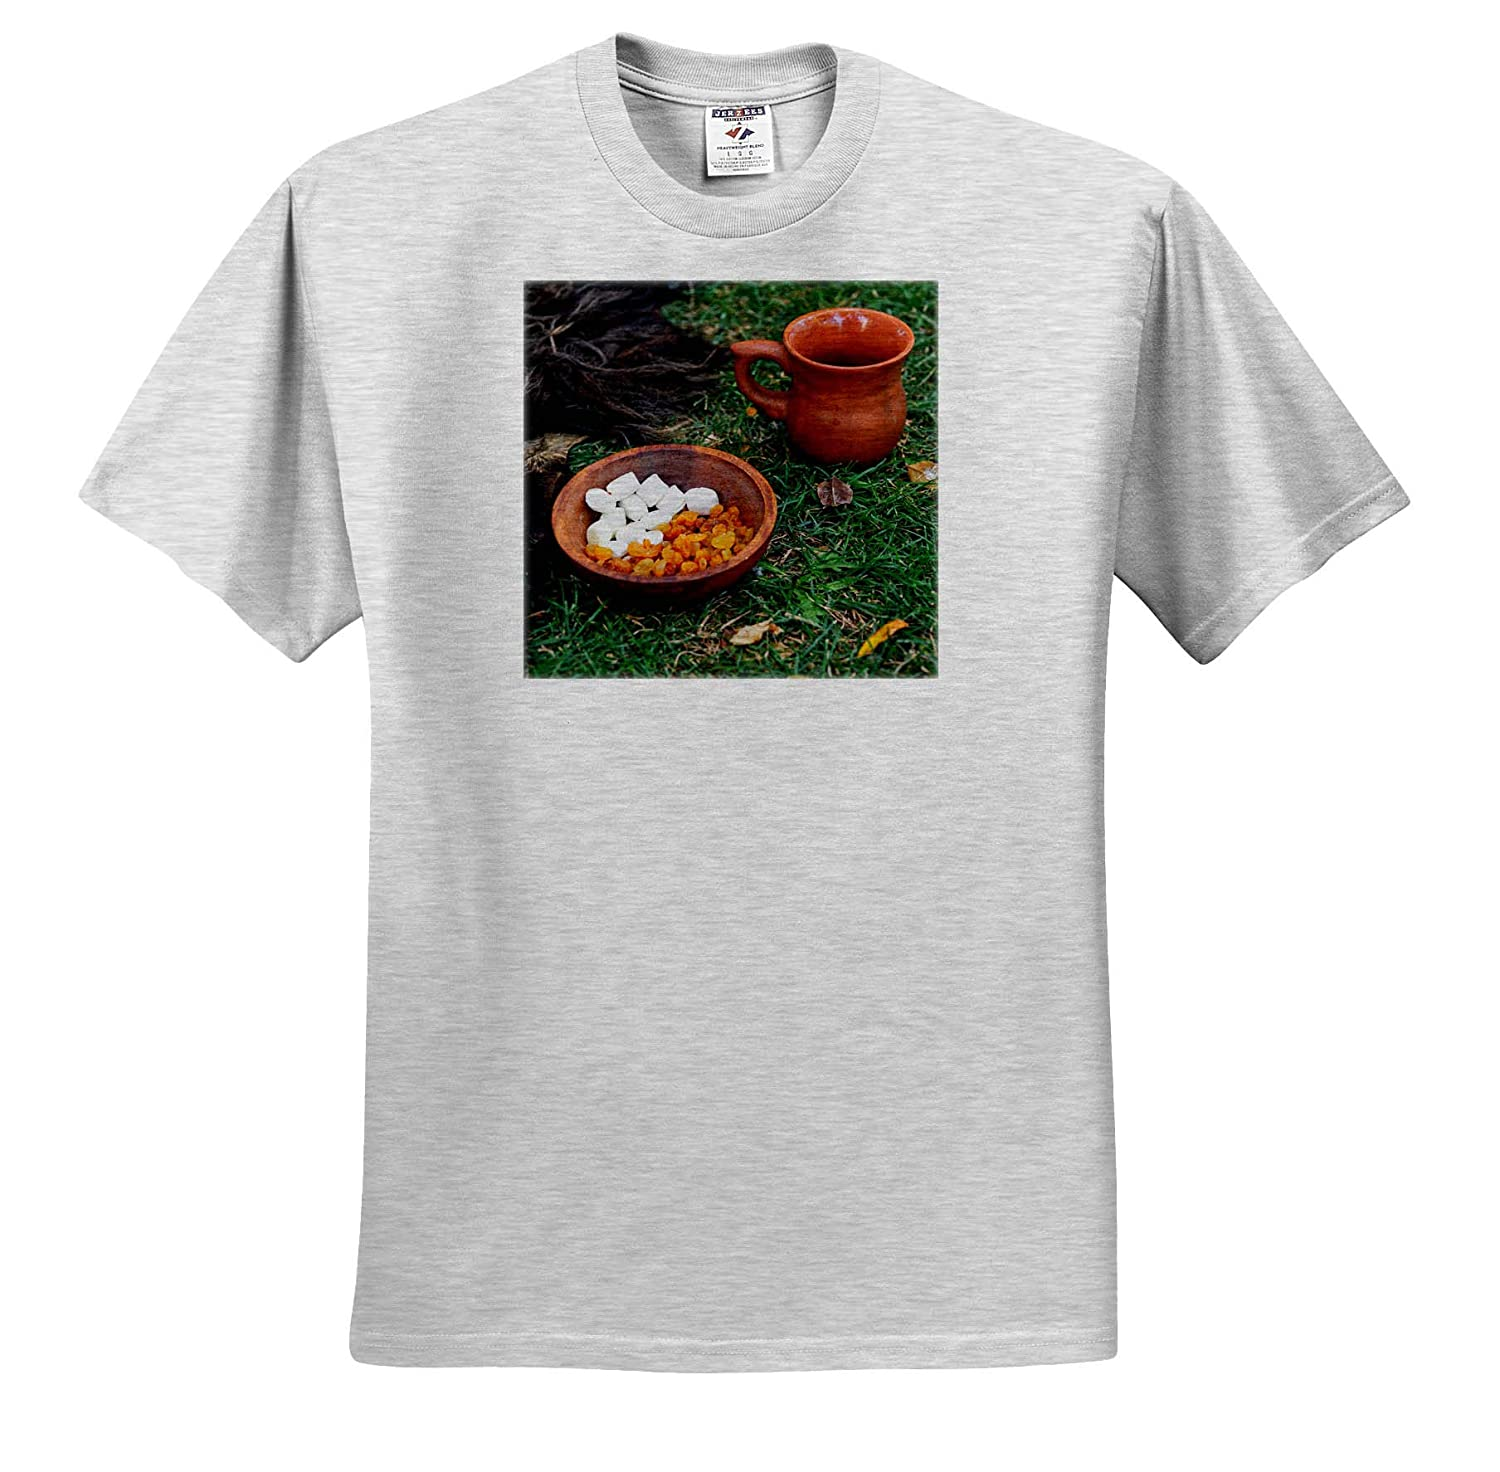 Raisins 3dRose Alexis Photography T-Shirts Still-Life Marshmallow in a Ceramic Bowl on a Grass Covered Ground